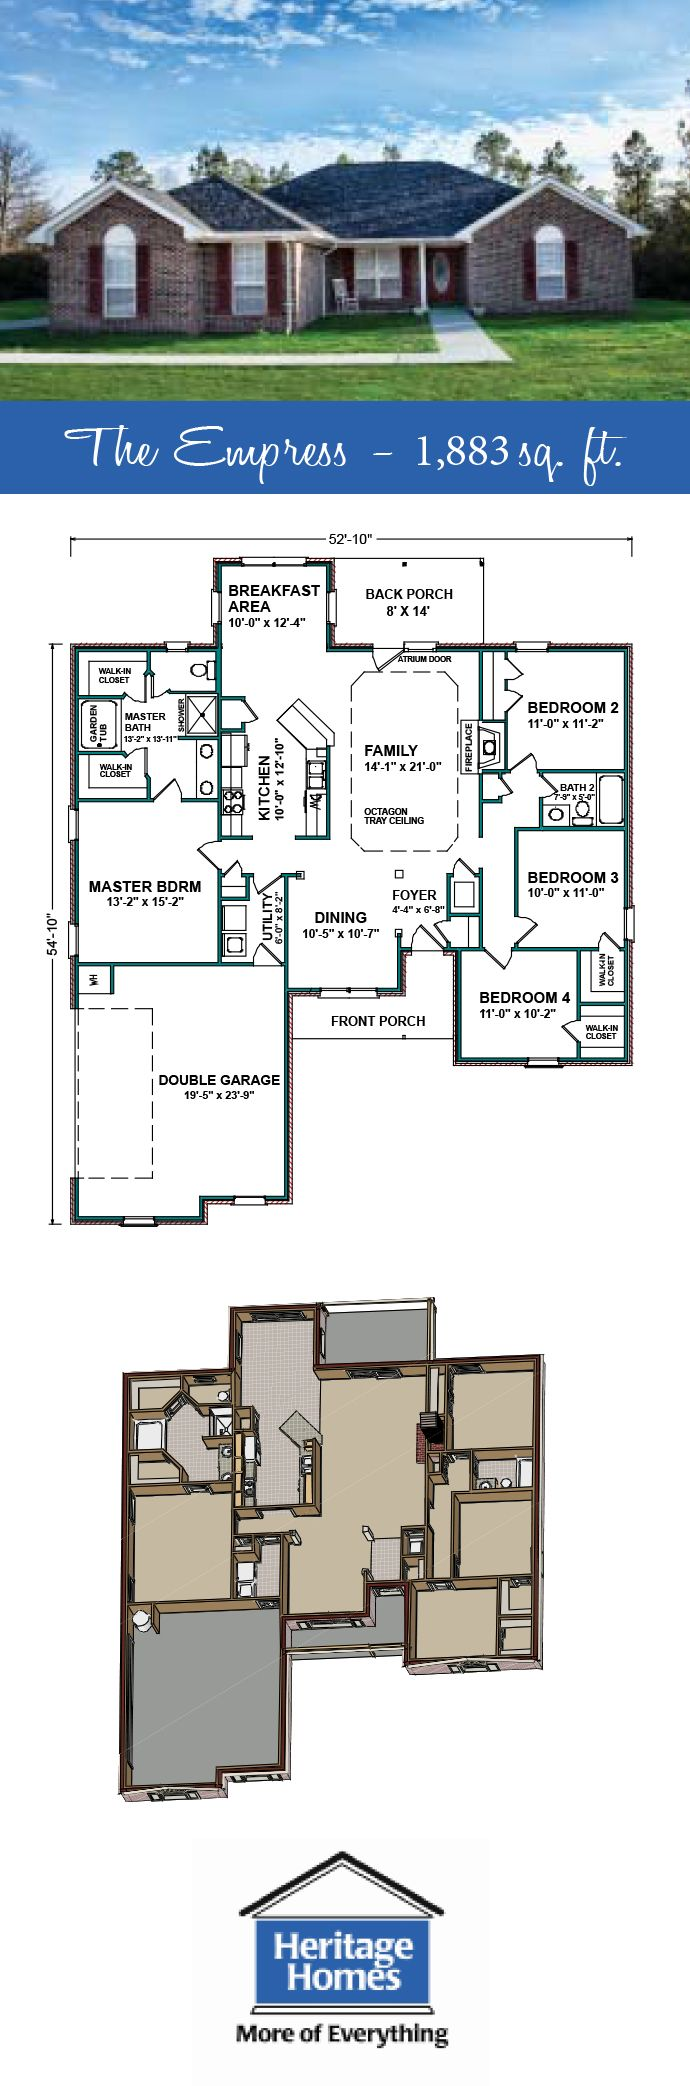 1 800 2 000 Sq Ft Floor Plan The Empress Is A 1 883 Sq Ft Home With 4 Beds 2 Baths All Of Our Plans Ca House Floor Plans Floor Plans House Design Photos